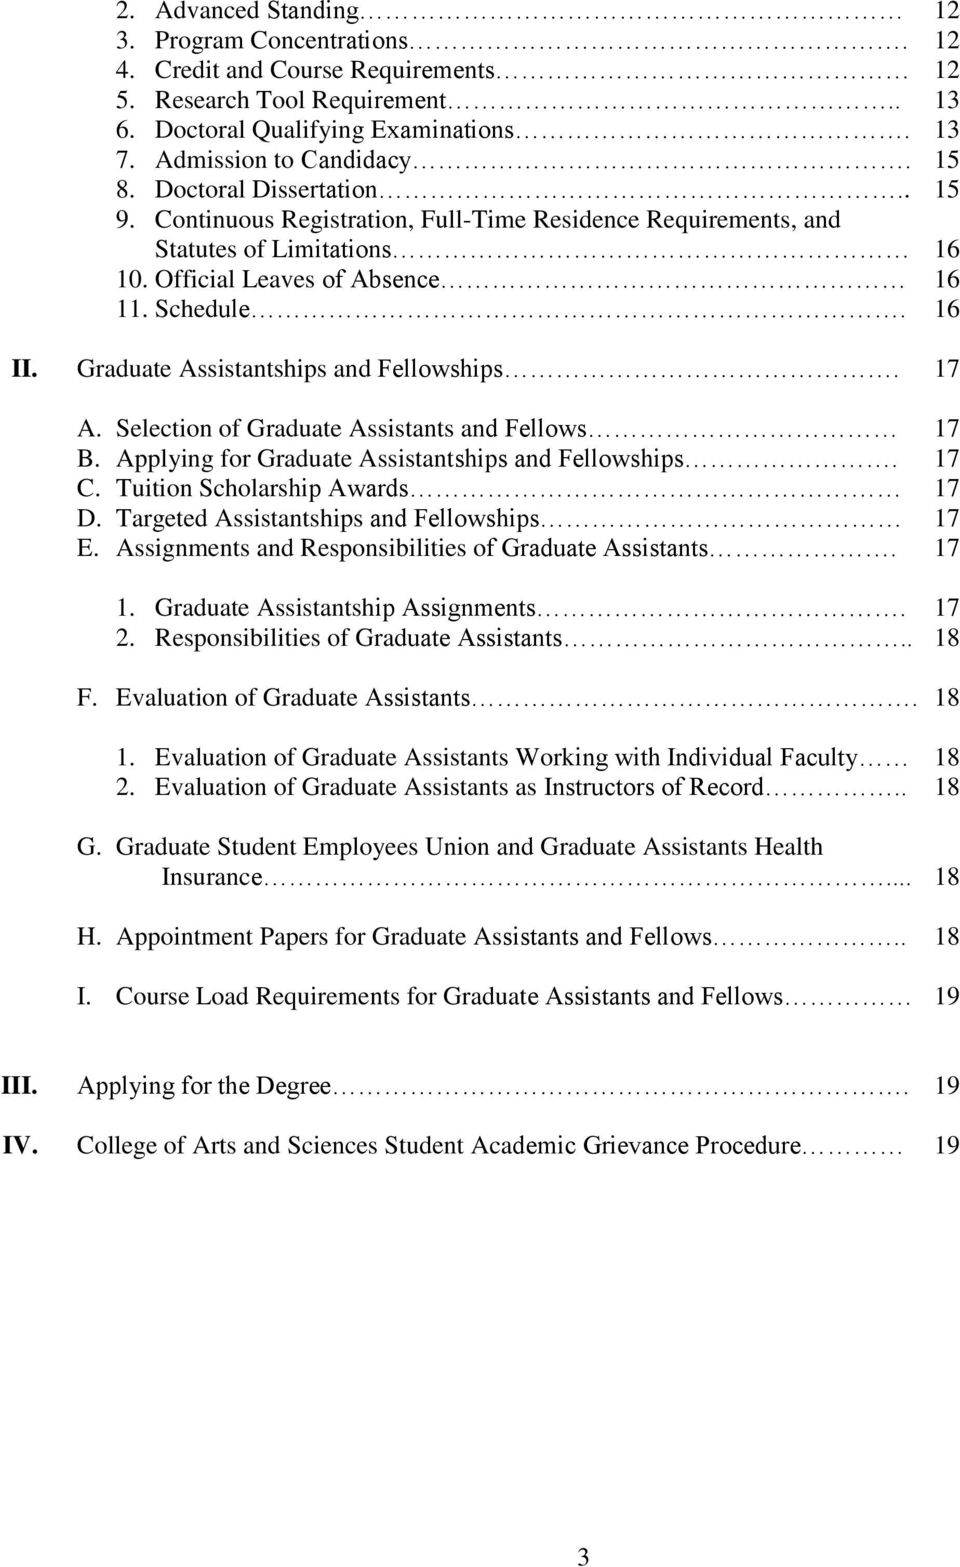 Graduate Assistantships and Fellowships. 17 A. Selection of Graduate Assistants and Fellows 17 B. Applying for Graduate Assistantships and Fellowships. 17 C. Tuition Scholarship Awards 17 D.